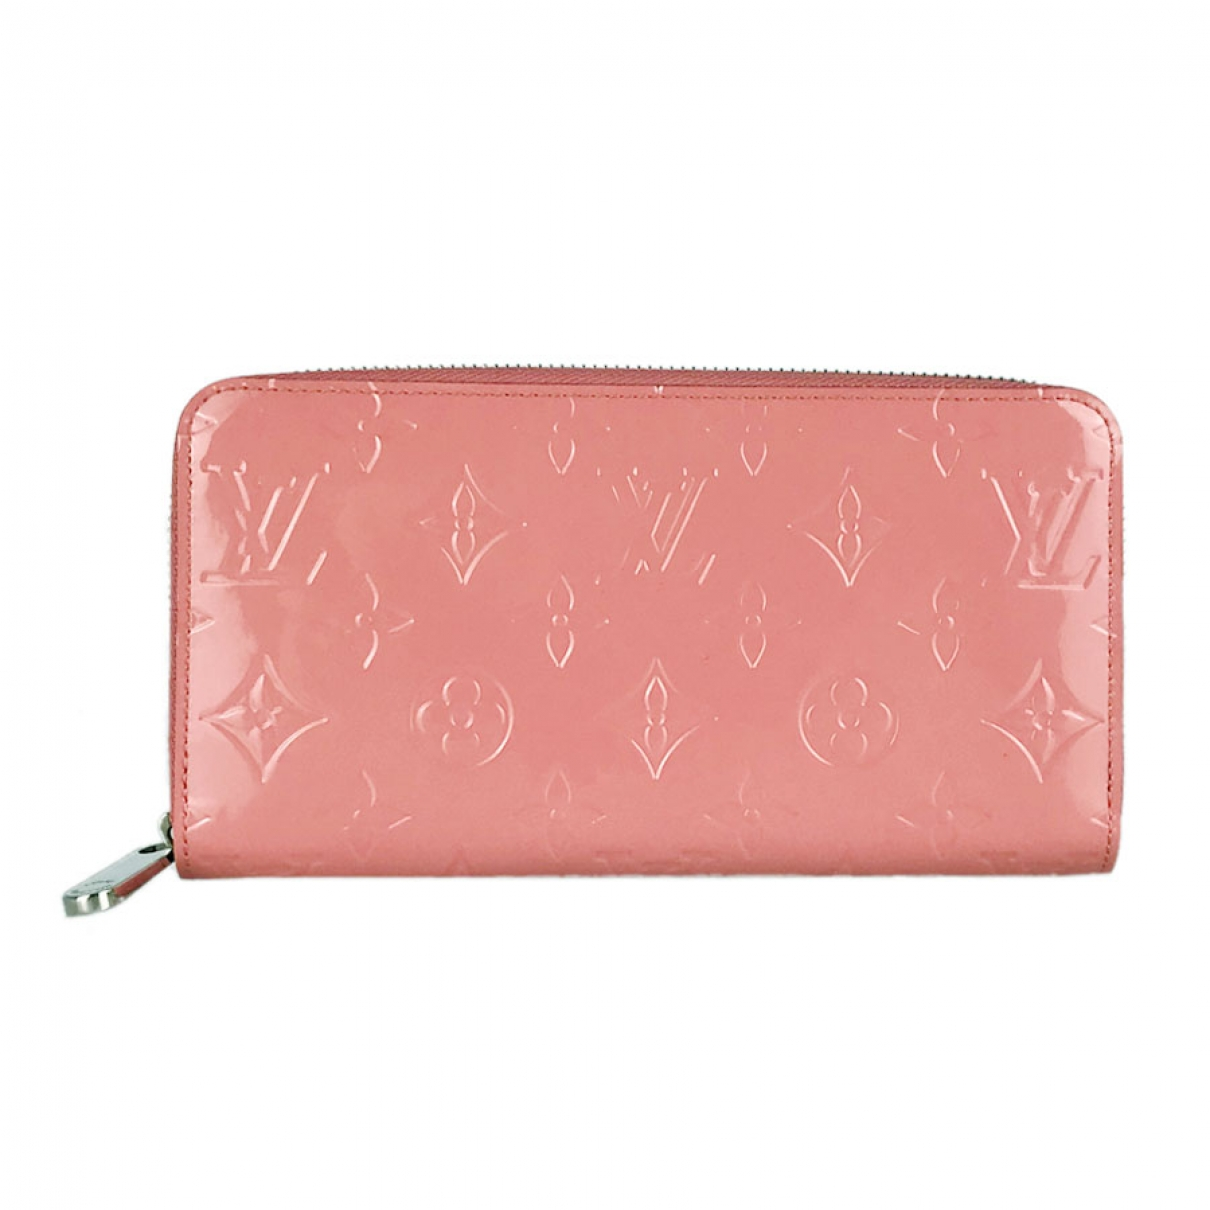 Louis Vuitton Zippy Portemonnaie in  Rosa Lackleder